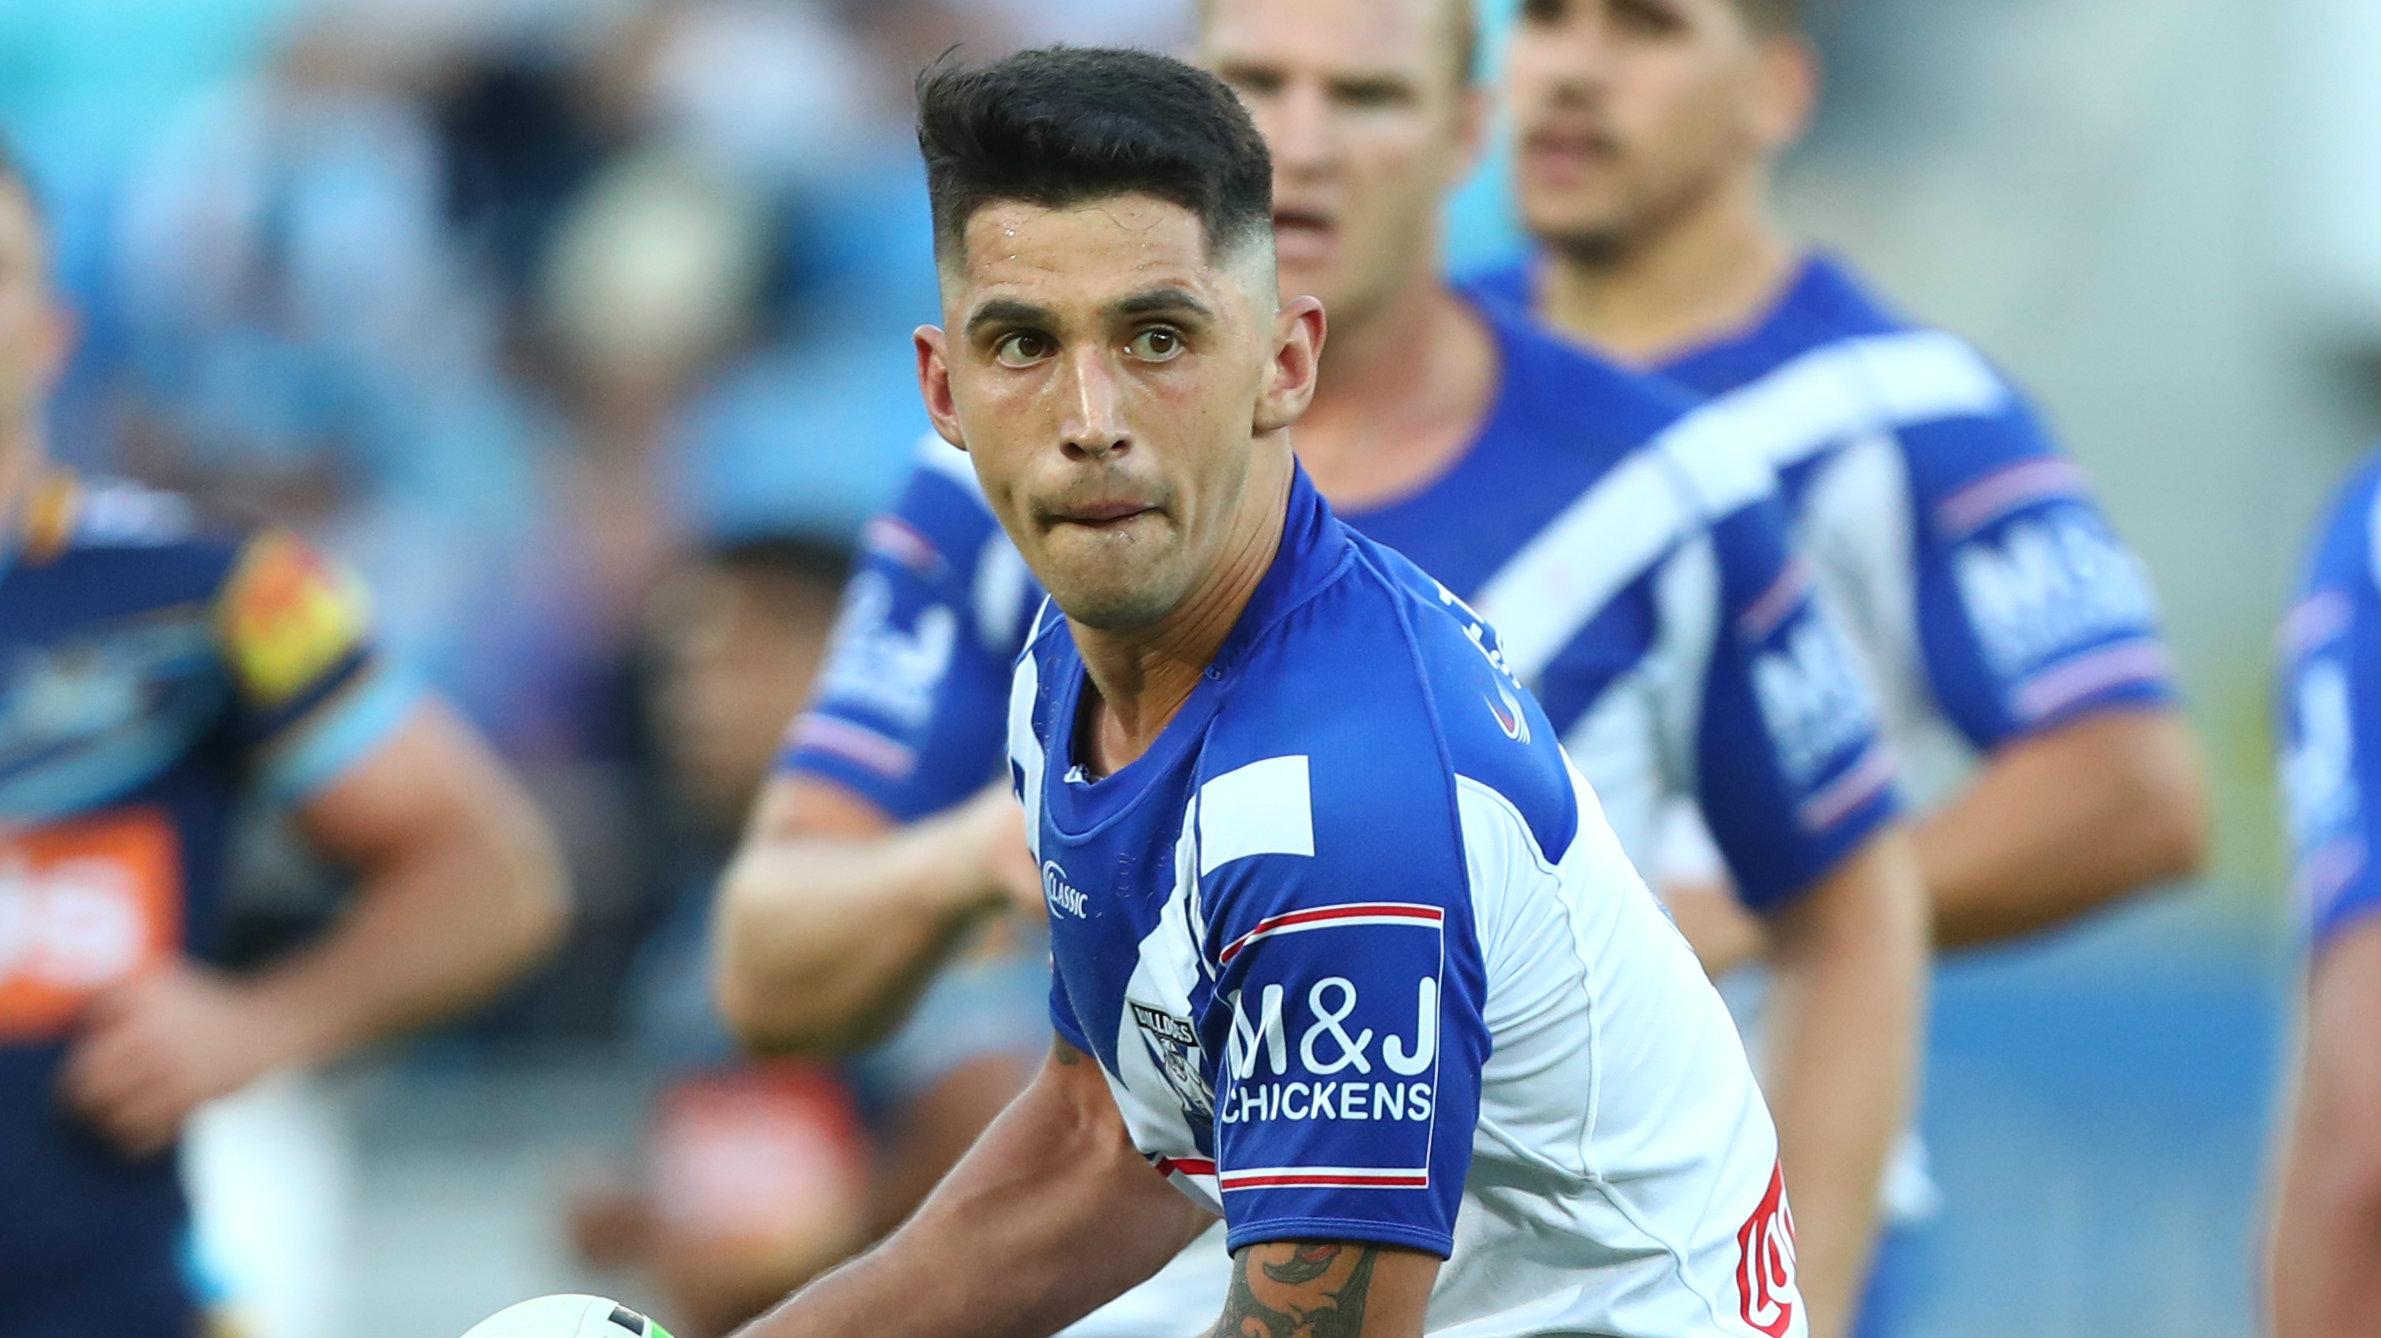 Jeremy Marshall-King signs two-year contract extension with Canterbury Bulldogs